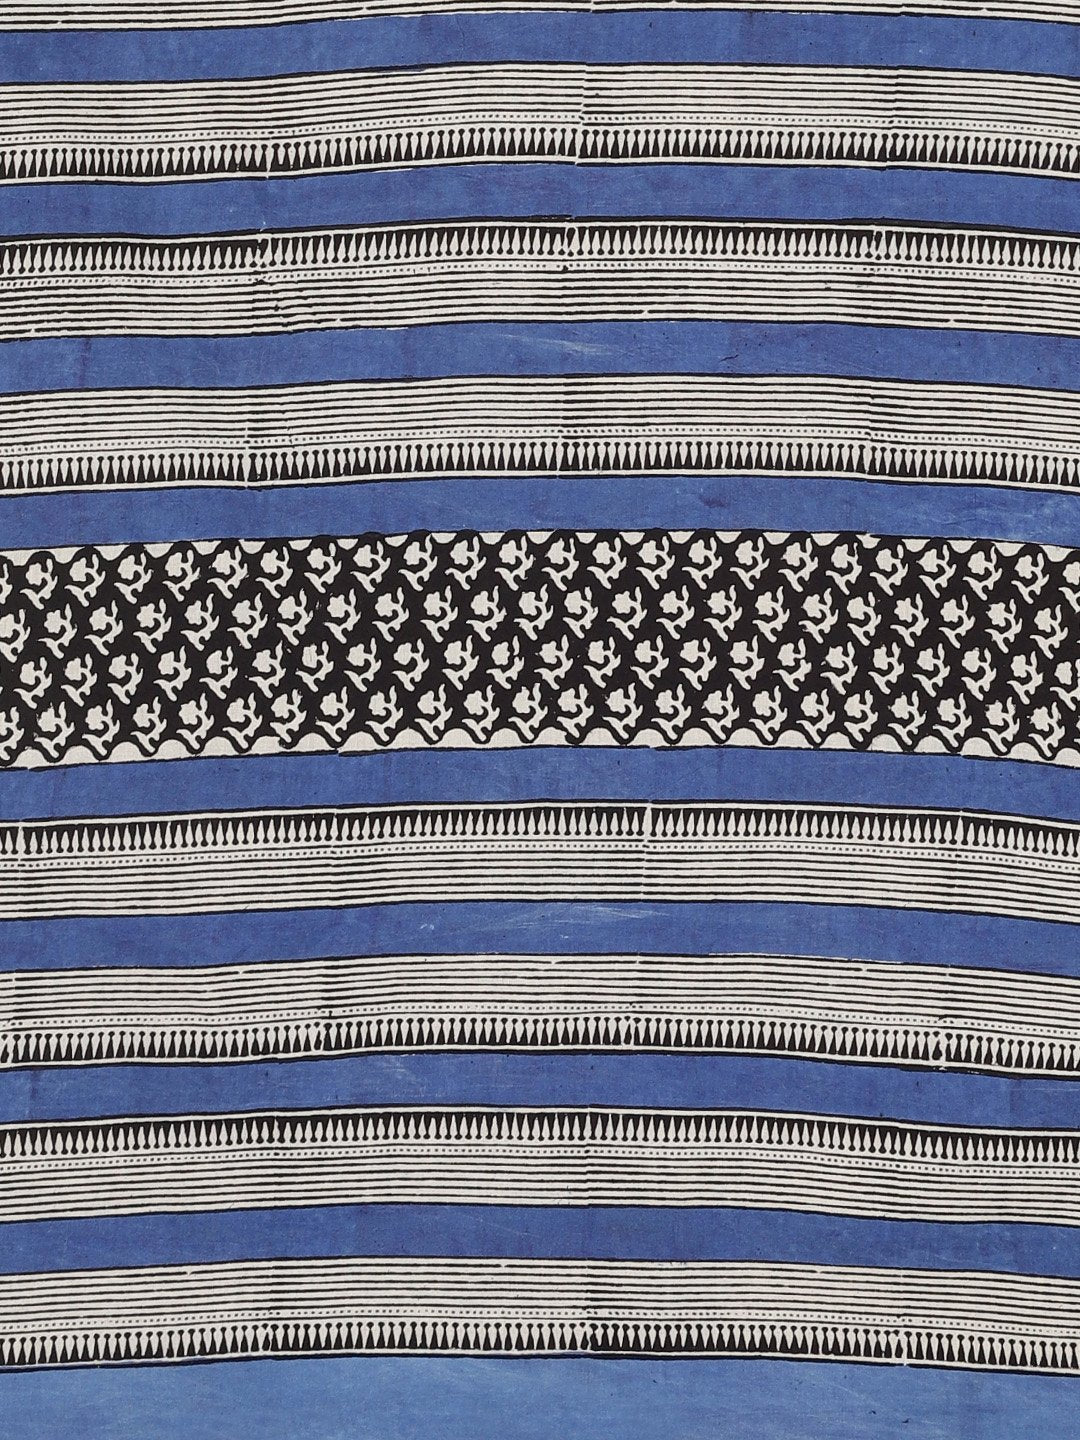 Blue & Grey Mud Resist Handblock Print Handcrafted Cotton Saree-Saree-Kalakari India-BHKPSA0050-Cotton, Dabu, Geographical Indication, Hand Blocks, Hand Crafted, Heritage Prints, Indigo, Natural Dyes, Sarees, Sustainable Fabrics-[Linen,Ethnic,wear,Fashionista,Handloom,Handicraft,Indigo,blockprint,block,print,Cotton,Chanderi,Blue, latest,classy,party,bollywood,trendy,summer,style,traditional,formal,elegant,unique,style,hand,block,print, dabu,booti,gift,present,glamorous,affordable,collectible,Sar